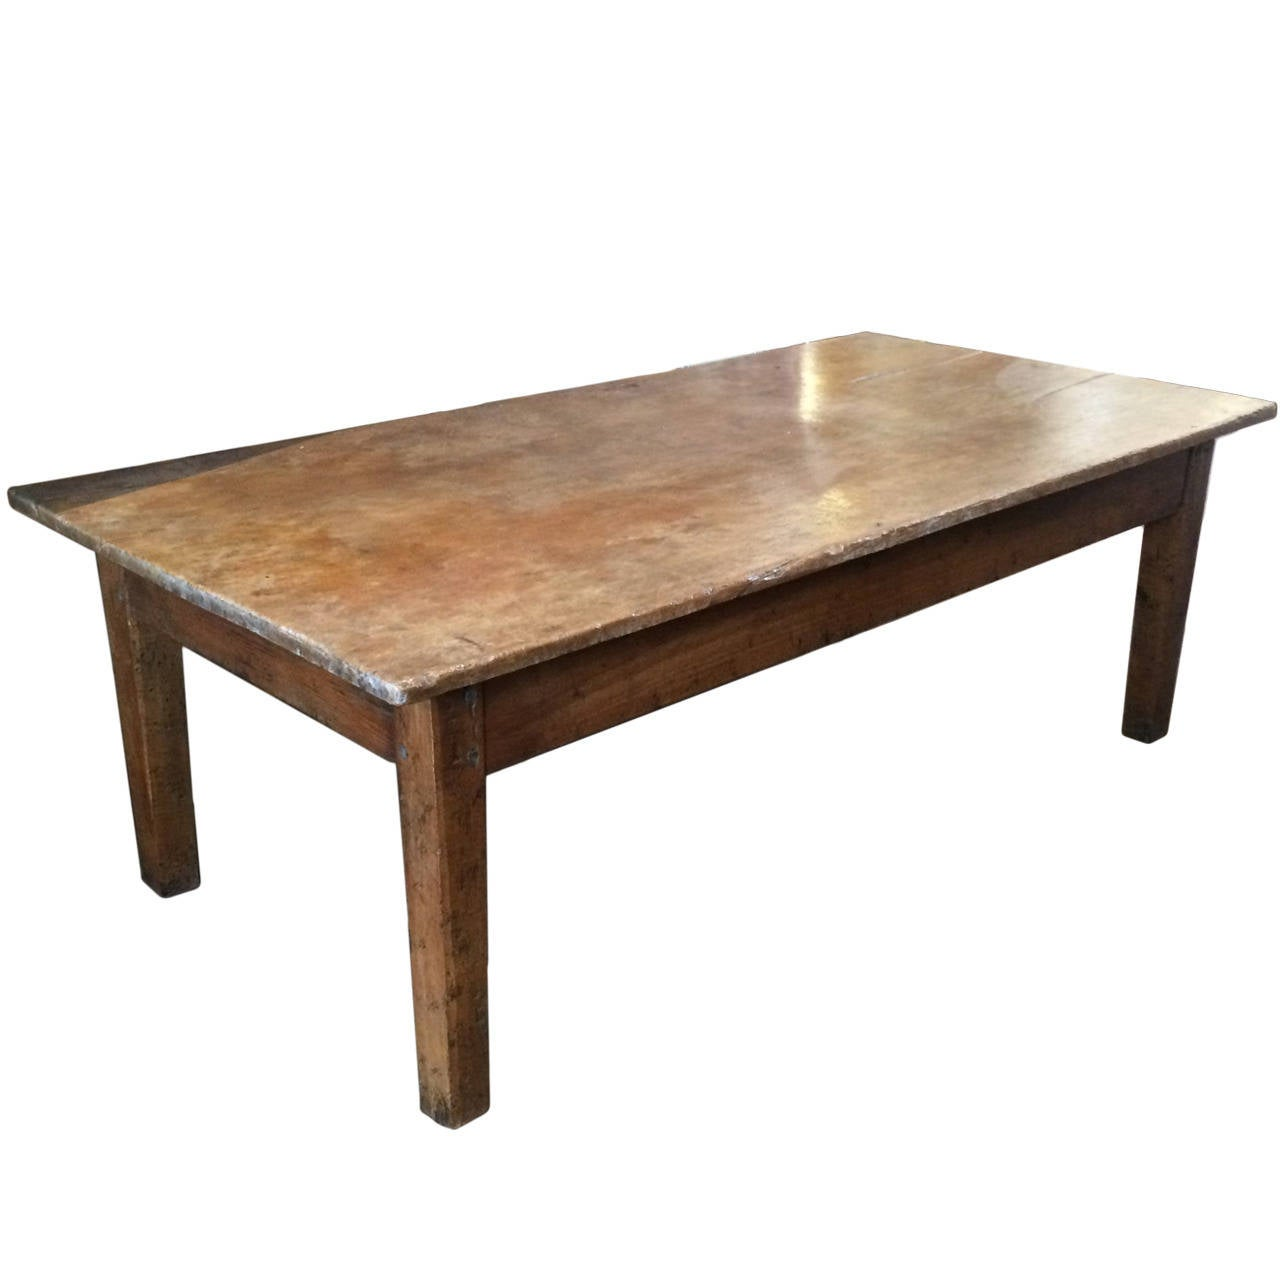 Antique Coffee Table With Pegged Construction At 1stdibs